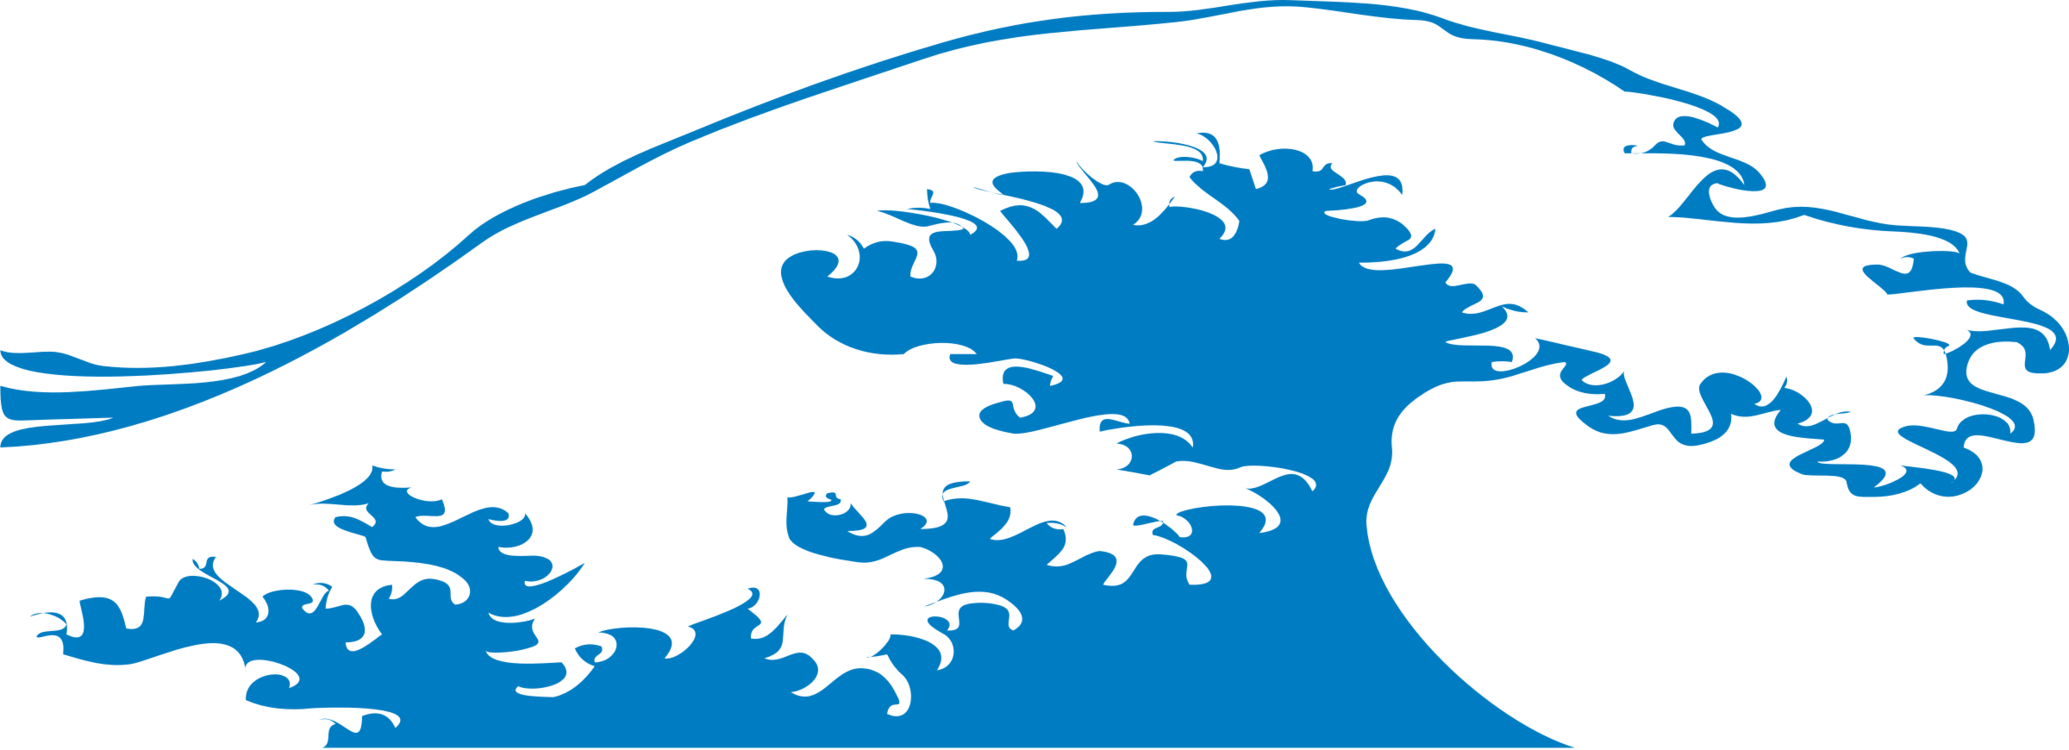 The sea x free. Clipart wave wave power